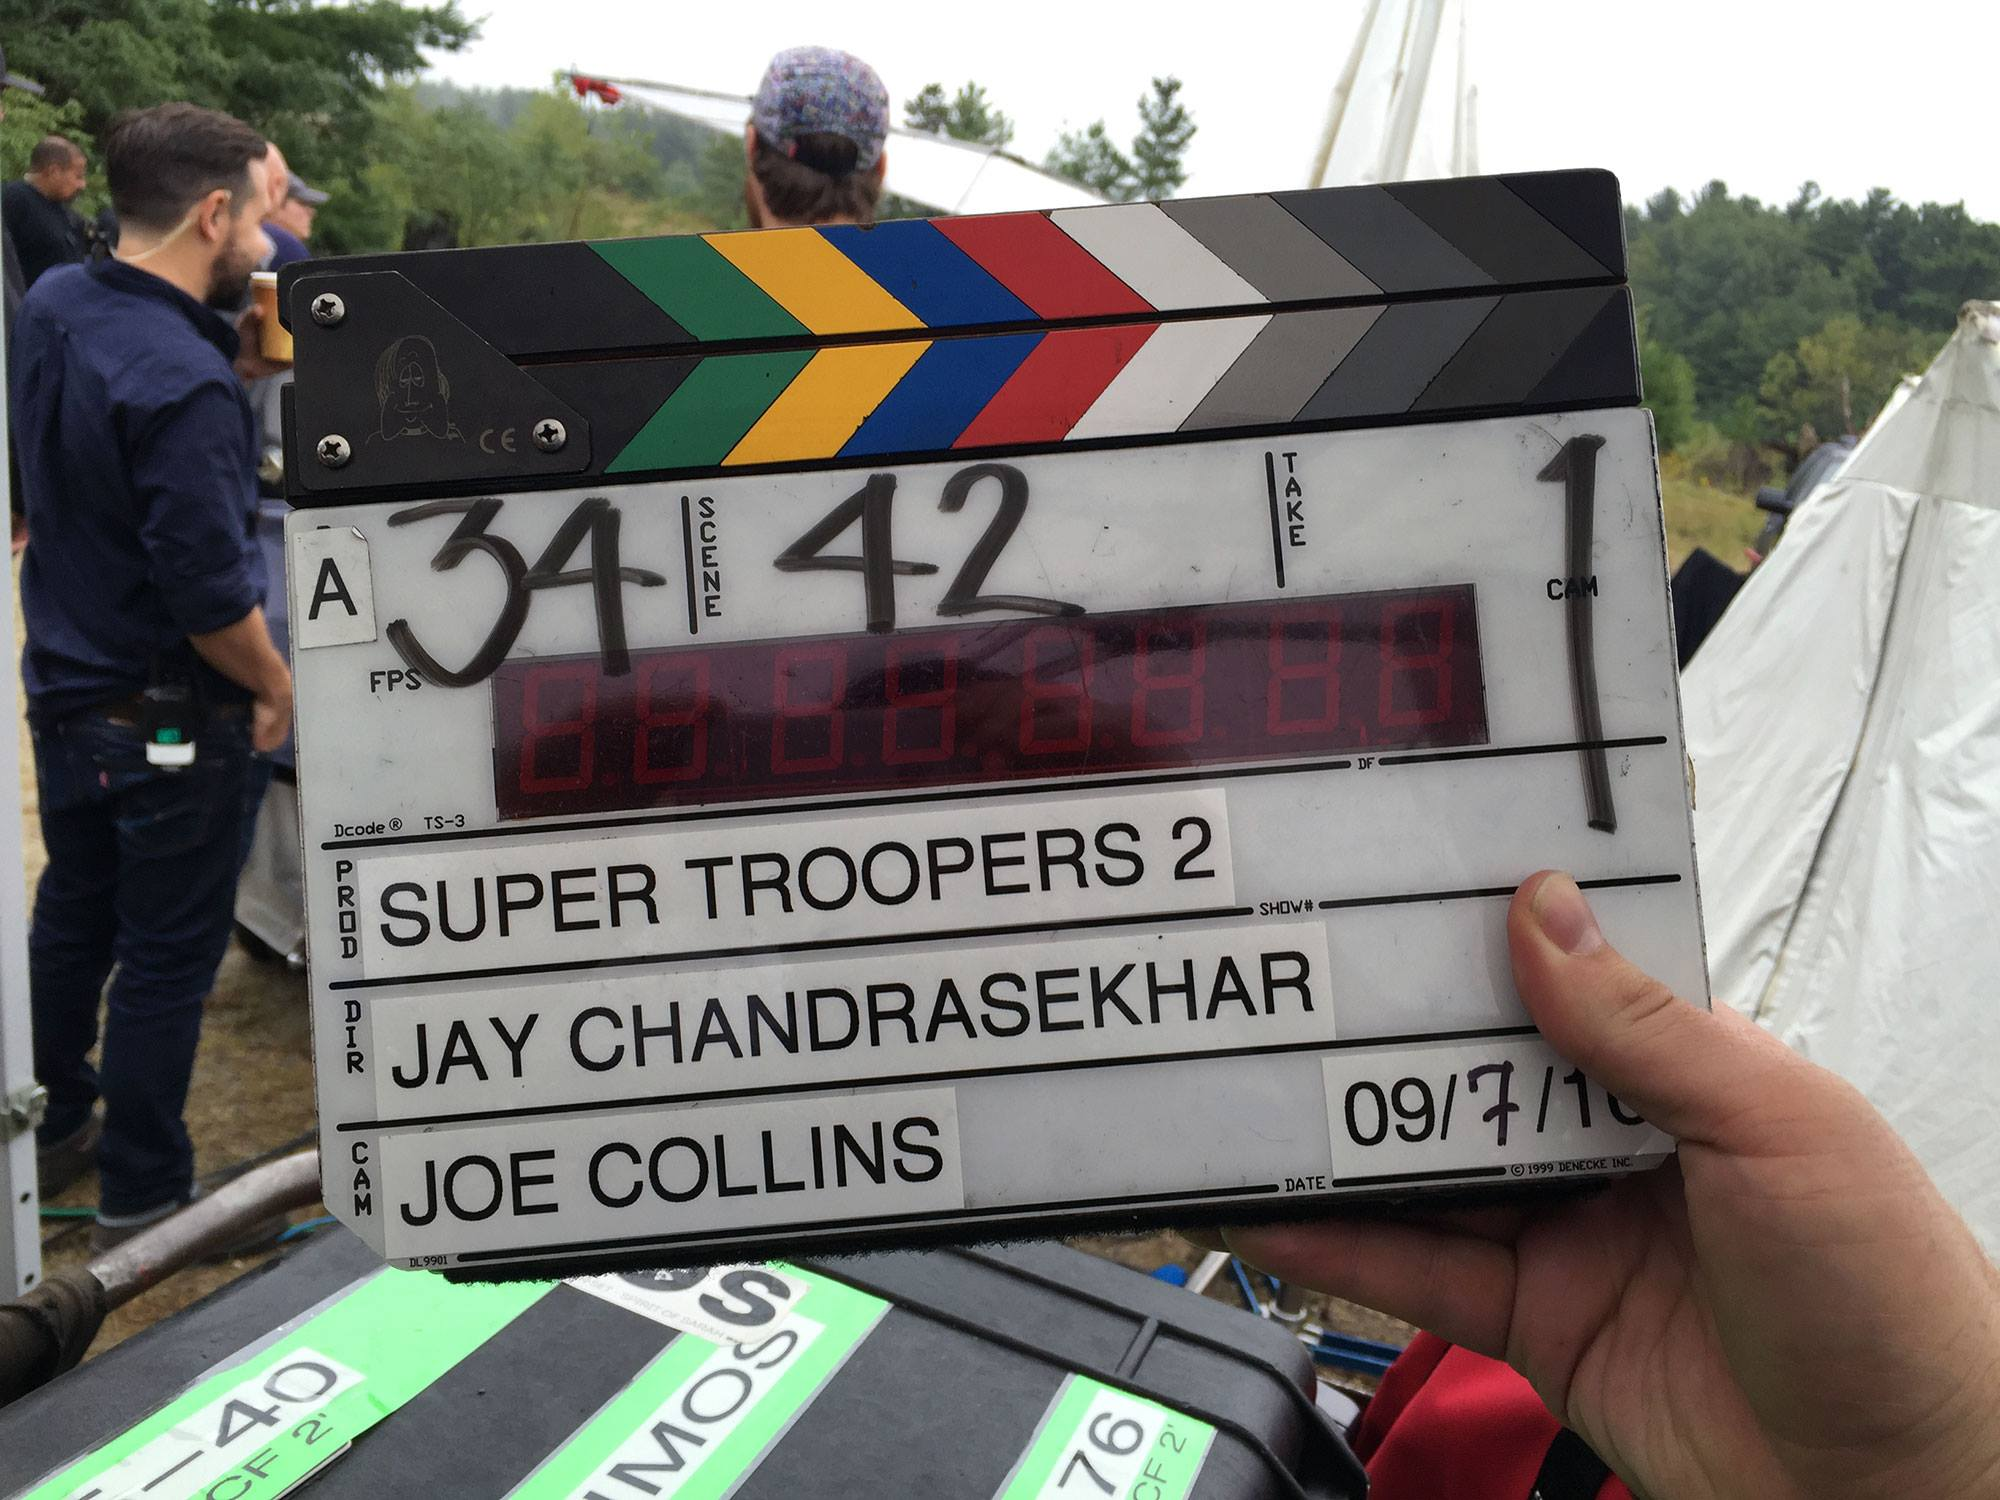 Super Troopers 2 has started filming.